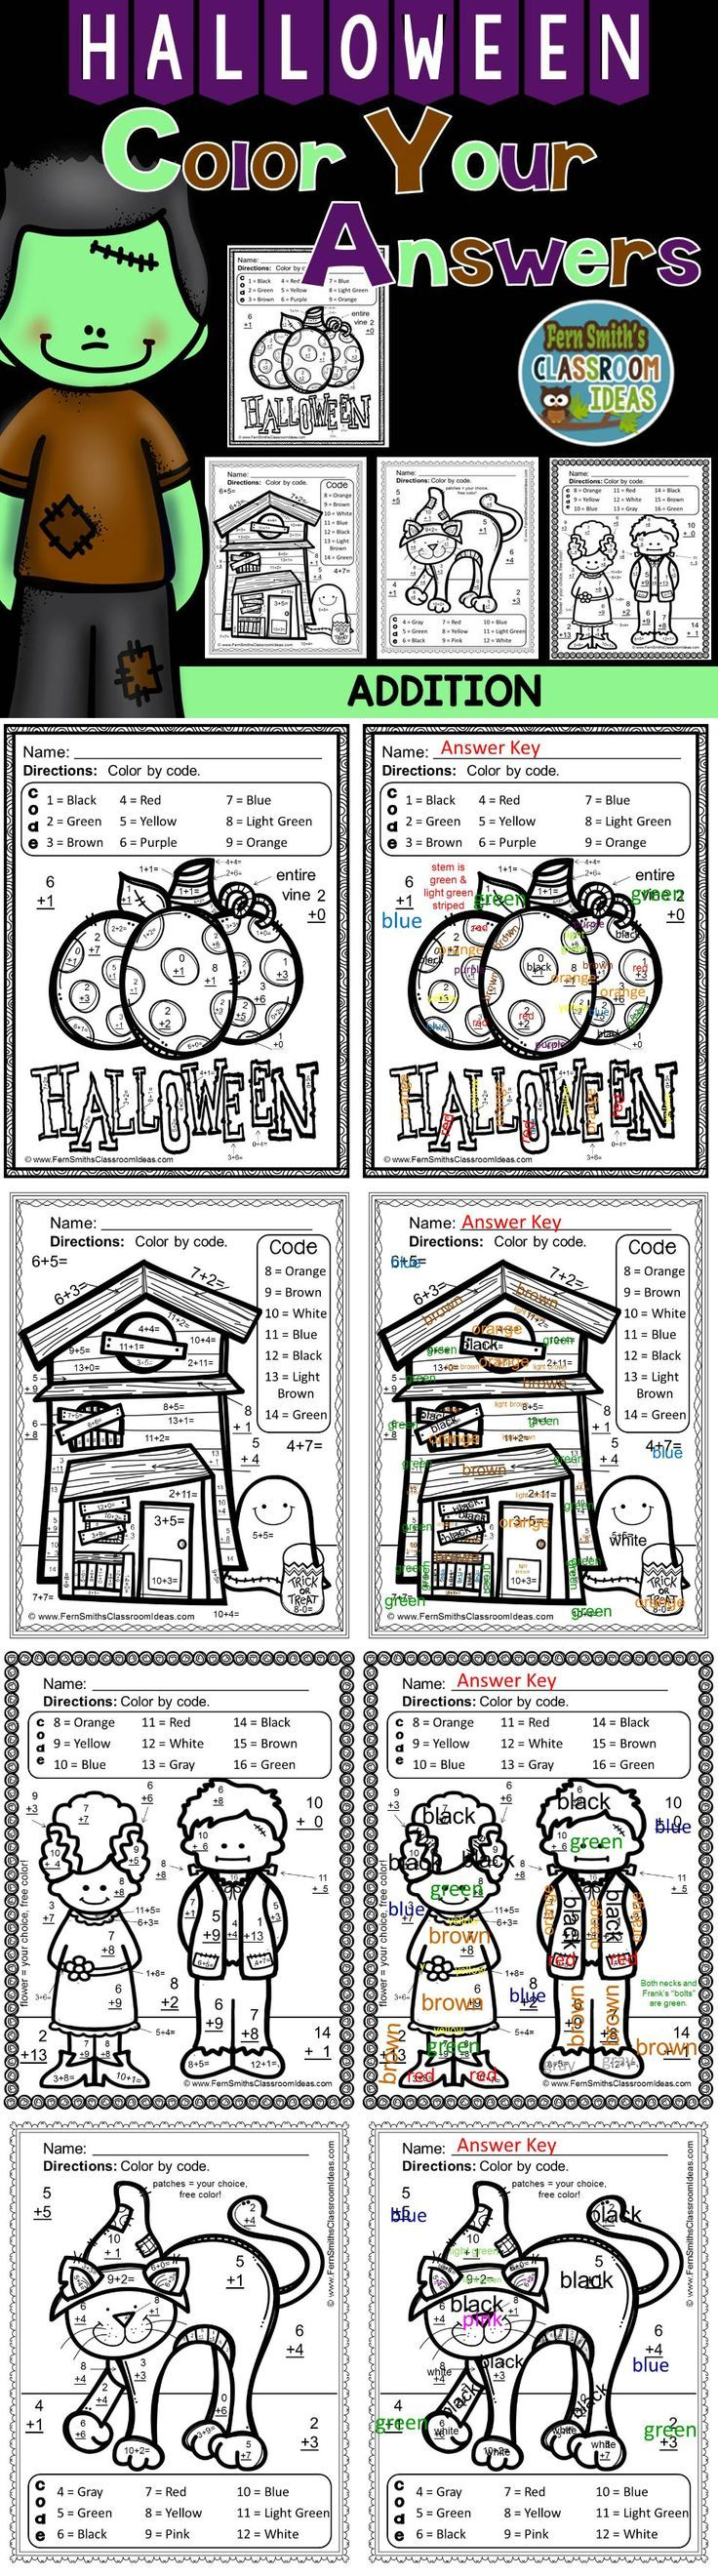 #Halloween Fun! Basic Addition Facts - Color Your Answers Printables! FOUR No Prep Printables that can be used for your math center, small group, RTI pull out, seatwork or homework. #TpT #FernSmithsClassroomIdeas $paid